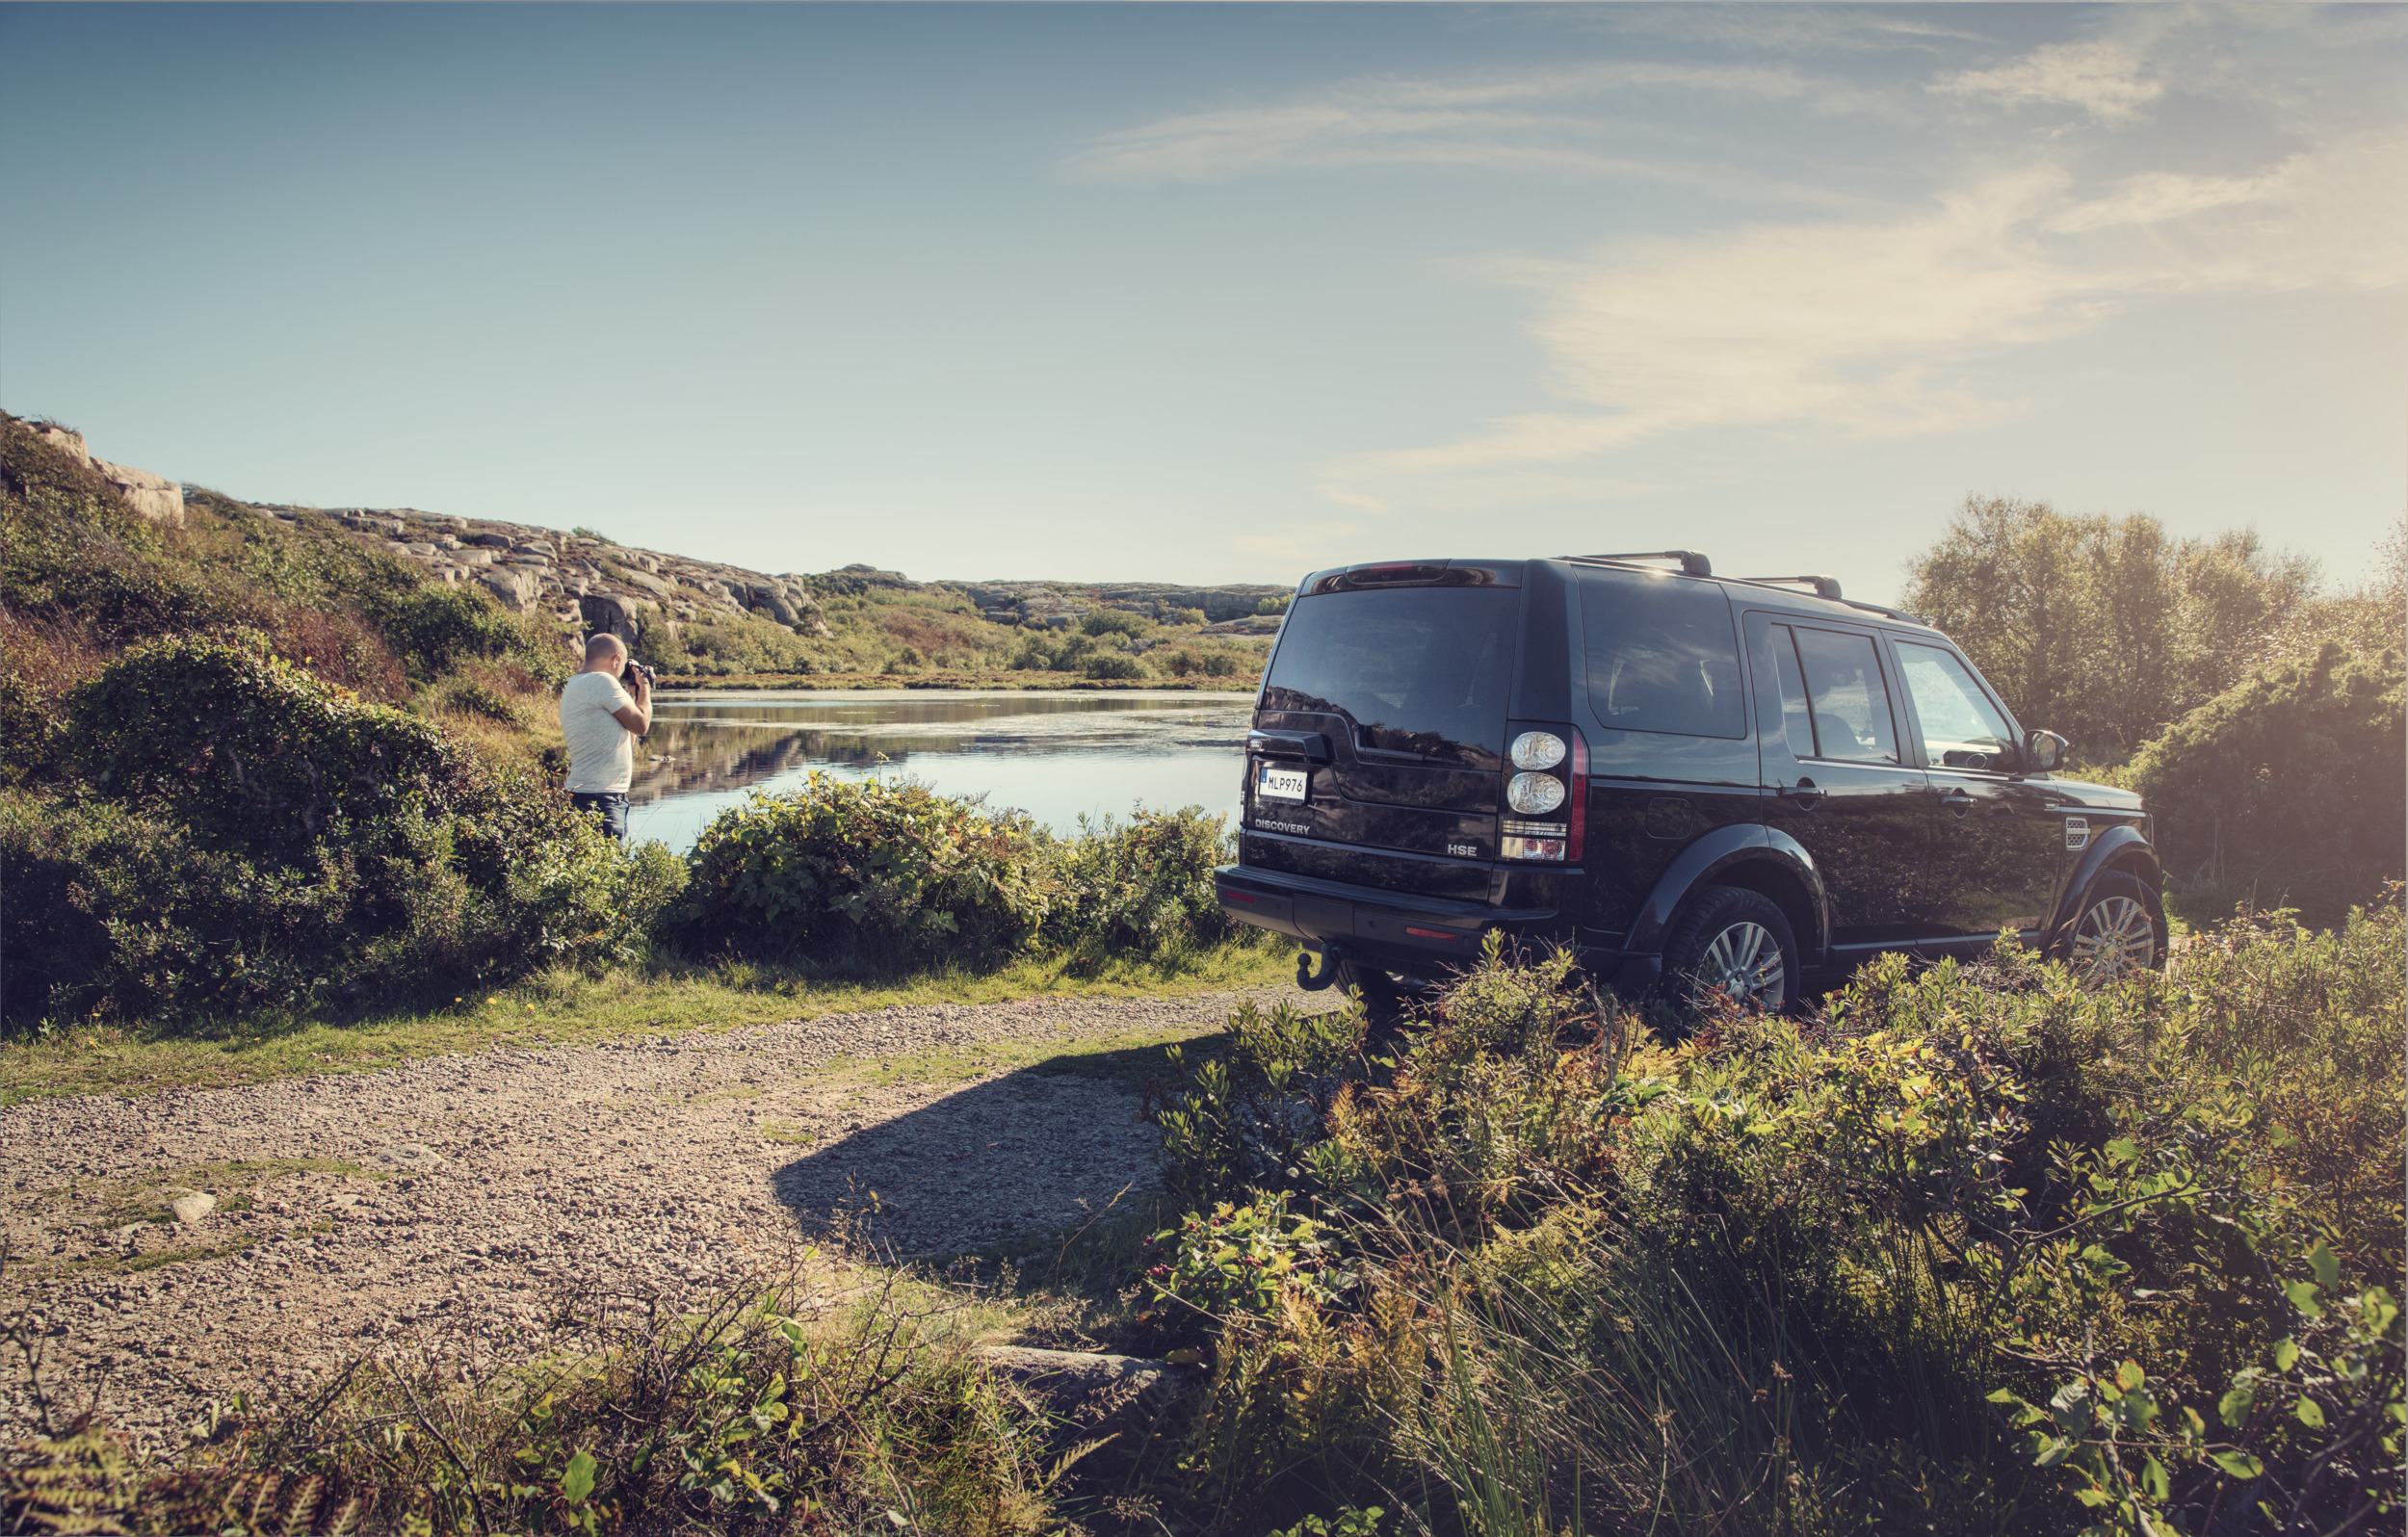 Dometic, landrover, camera, car, vehicle, photo, lake, drive, road trip, nature, lifestyle